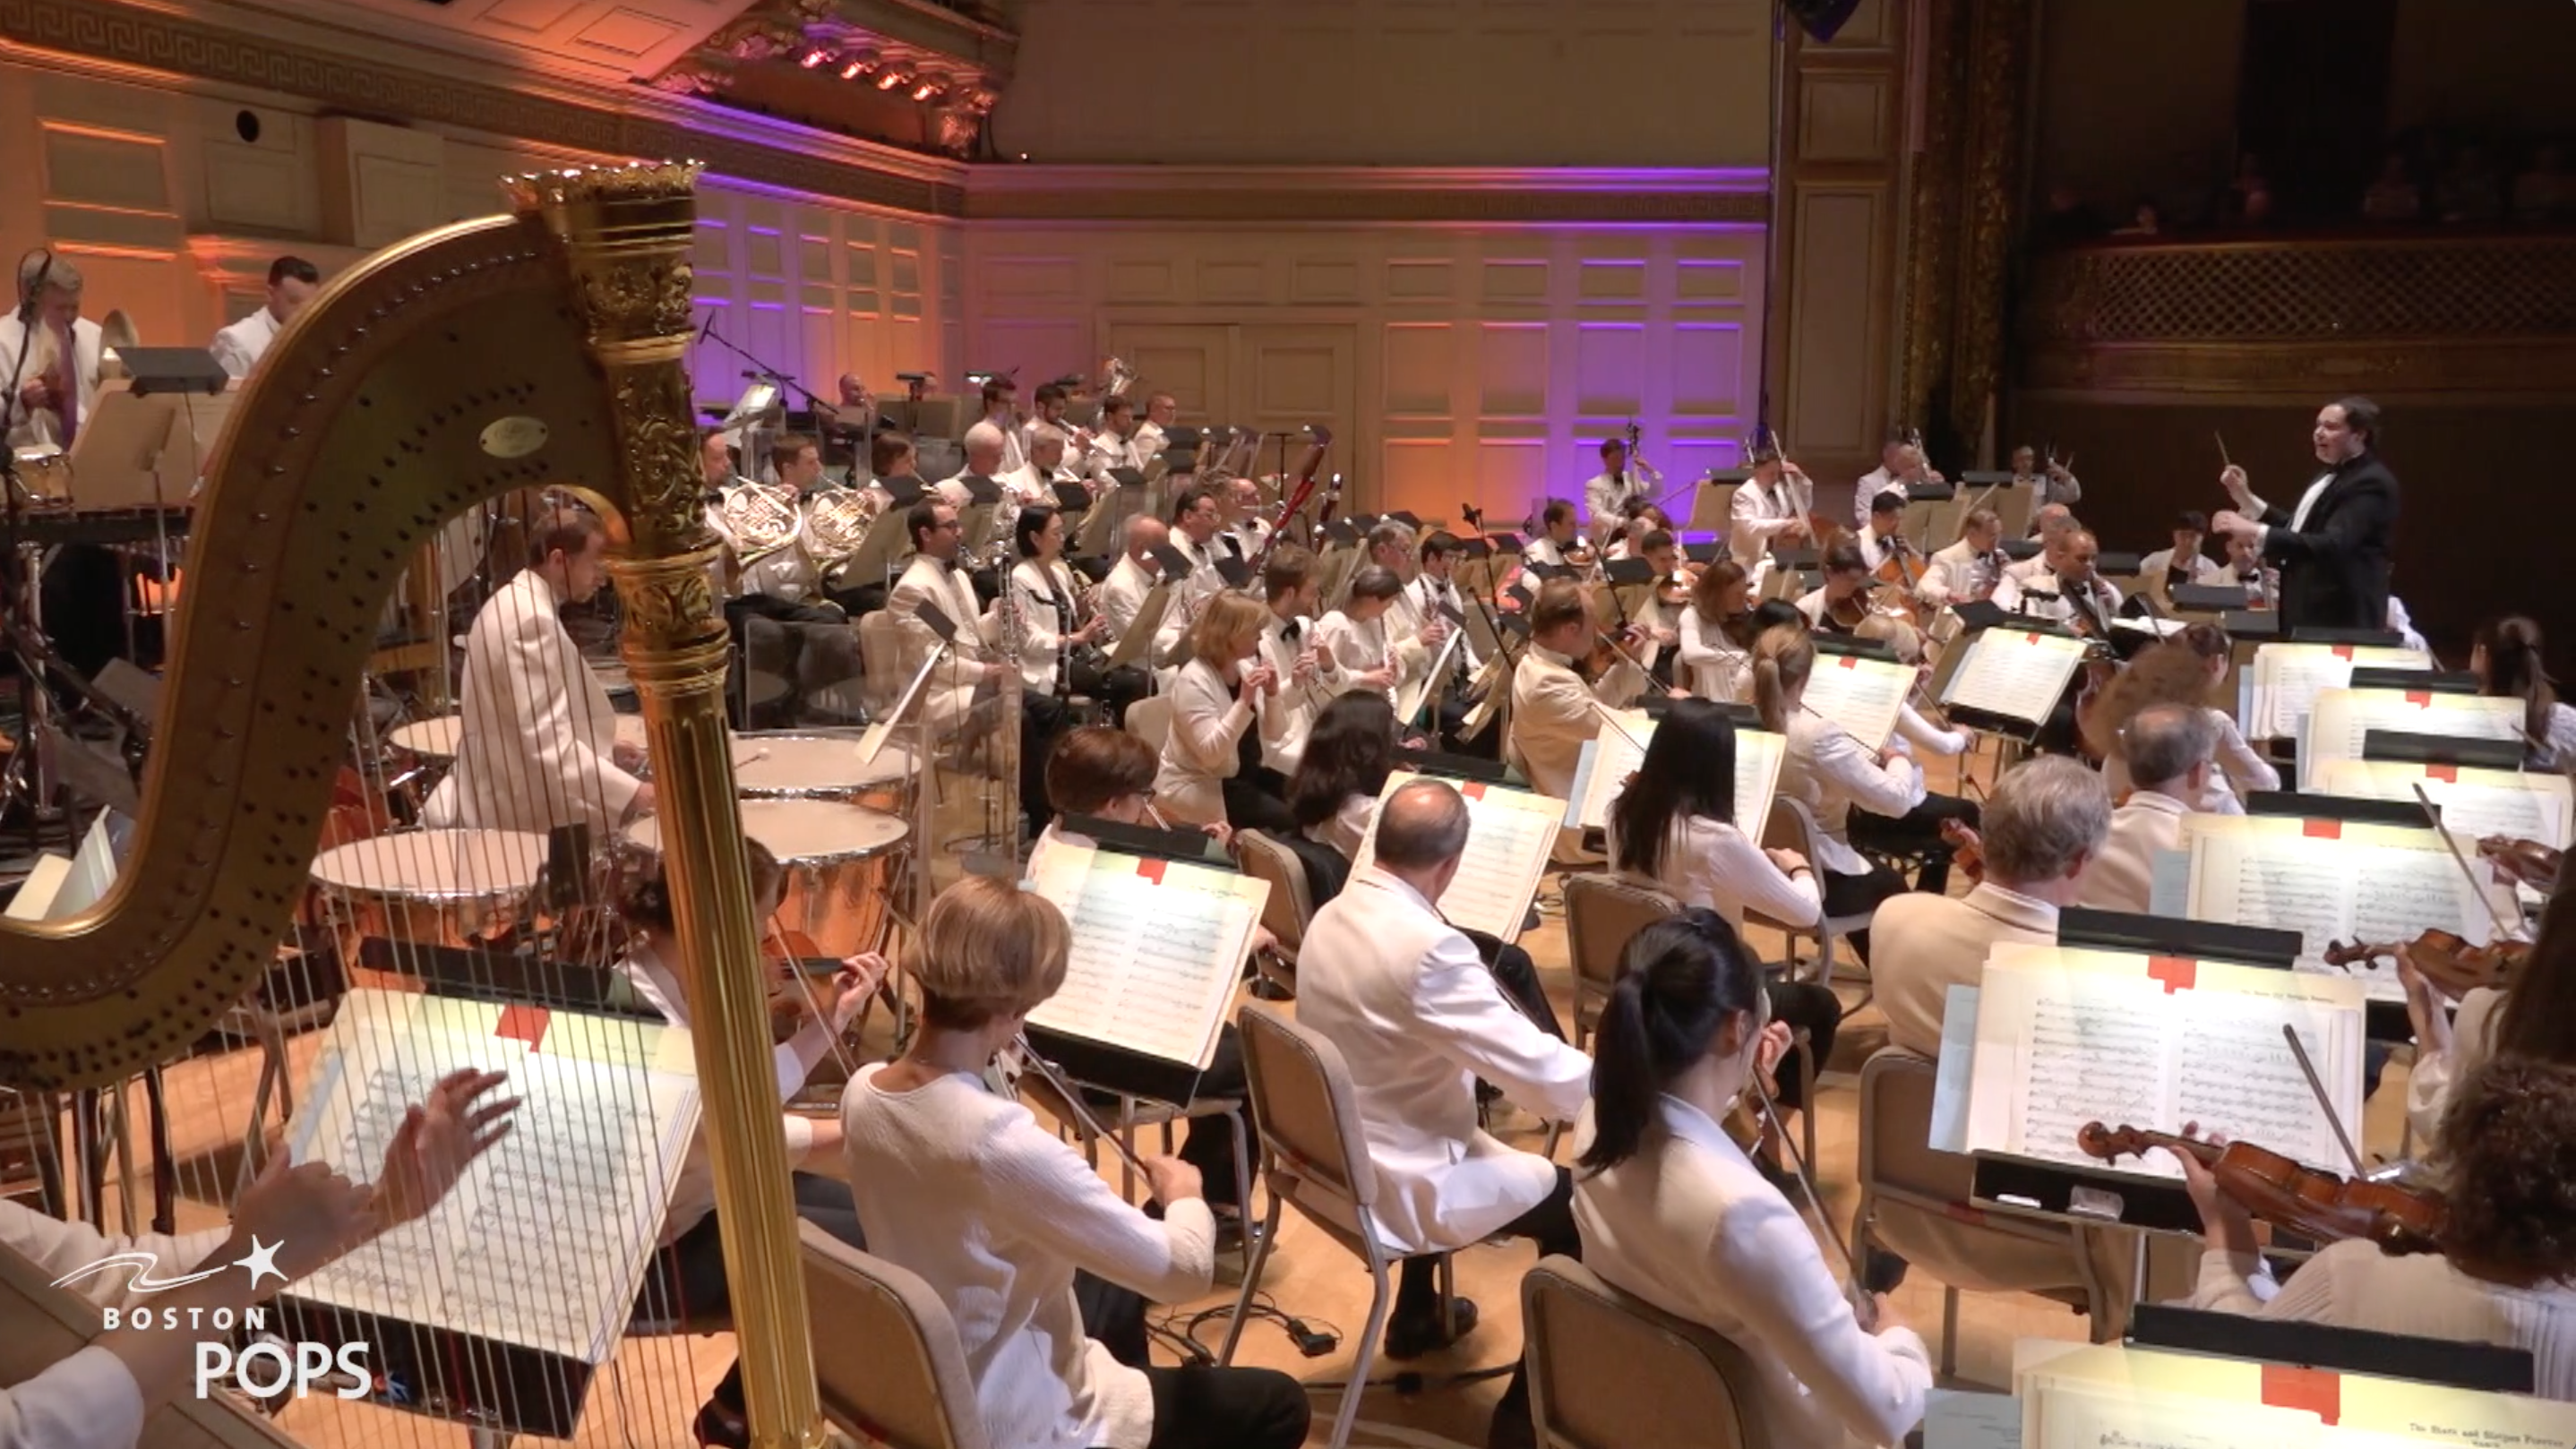 Courtesy of the Boston Pops: